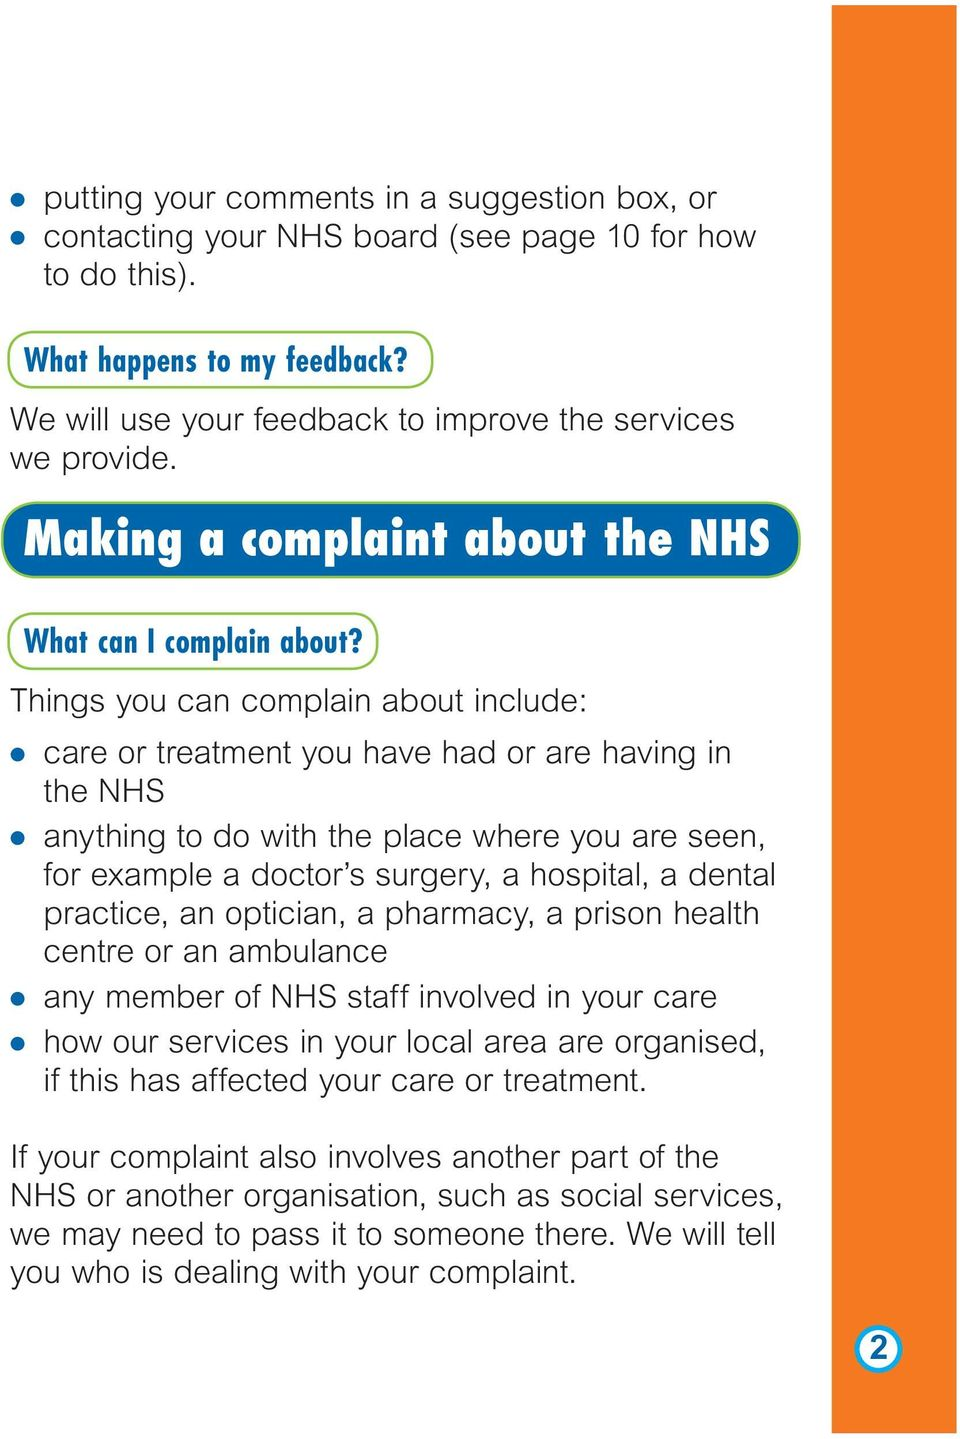 Things you can complain about include: l care or treatment you have had or are having in the NHS l anything to do with the place where you are seen, for example a doctor s surgery, a hospital, a